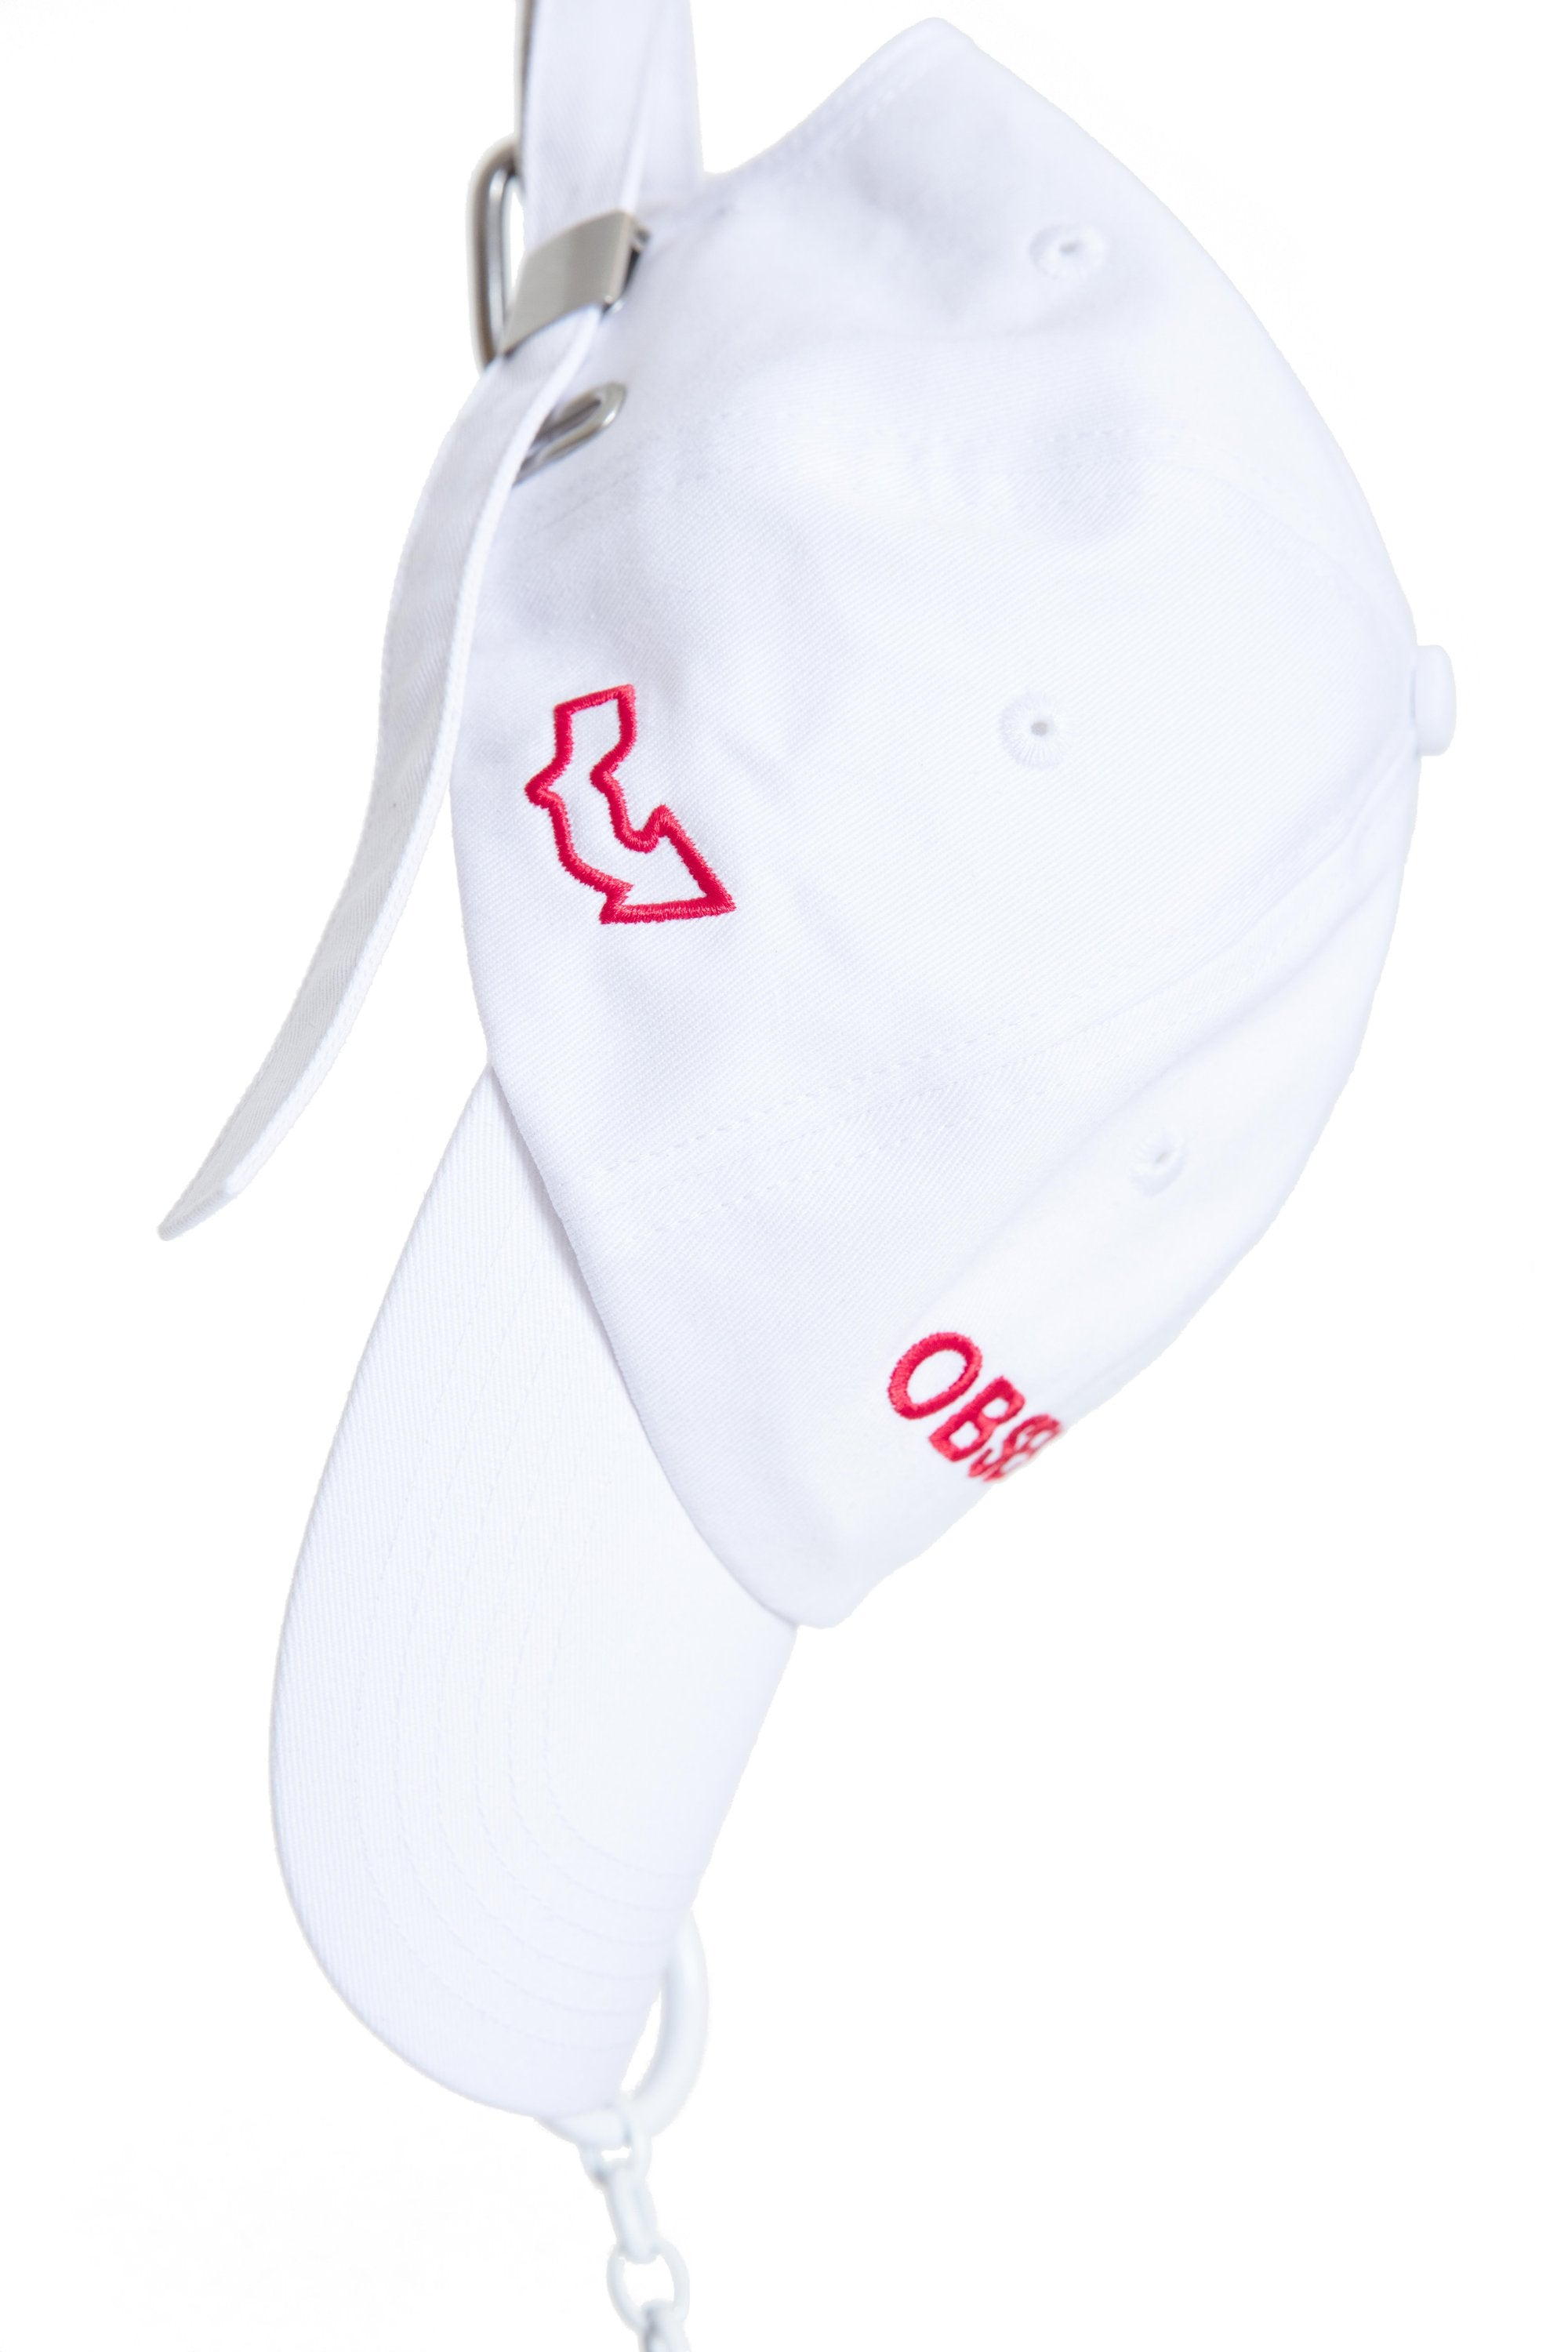 OBSESSED CAP - WHITE